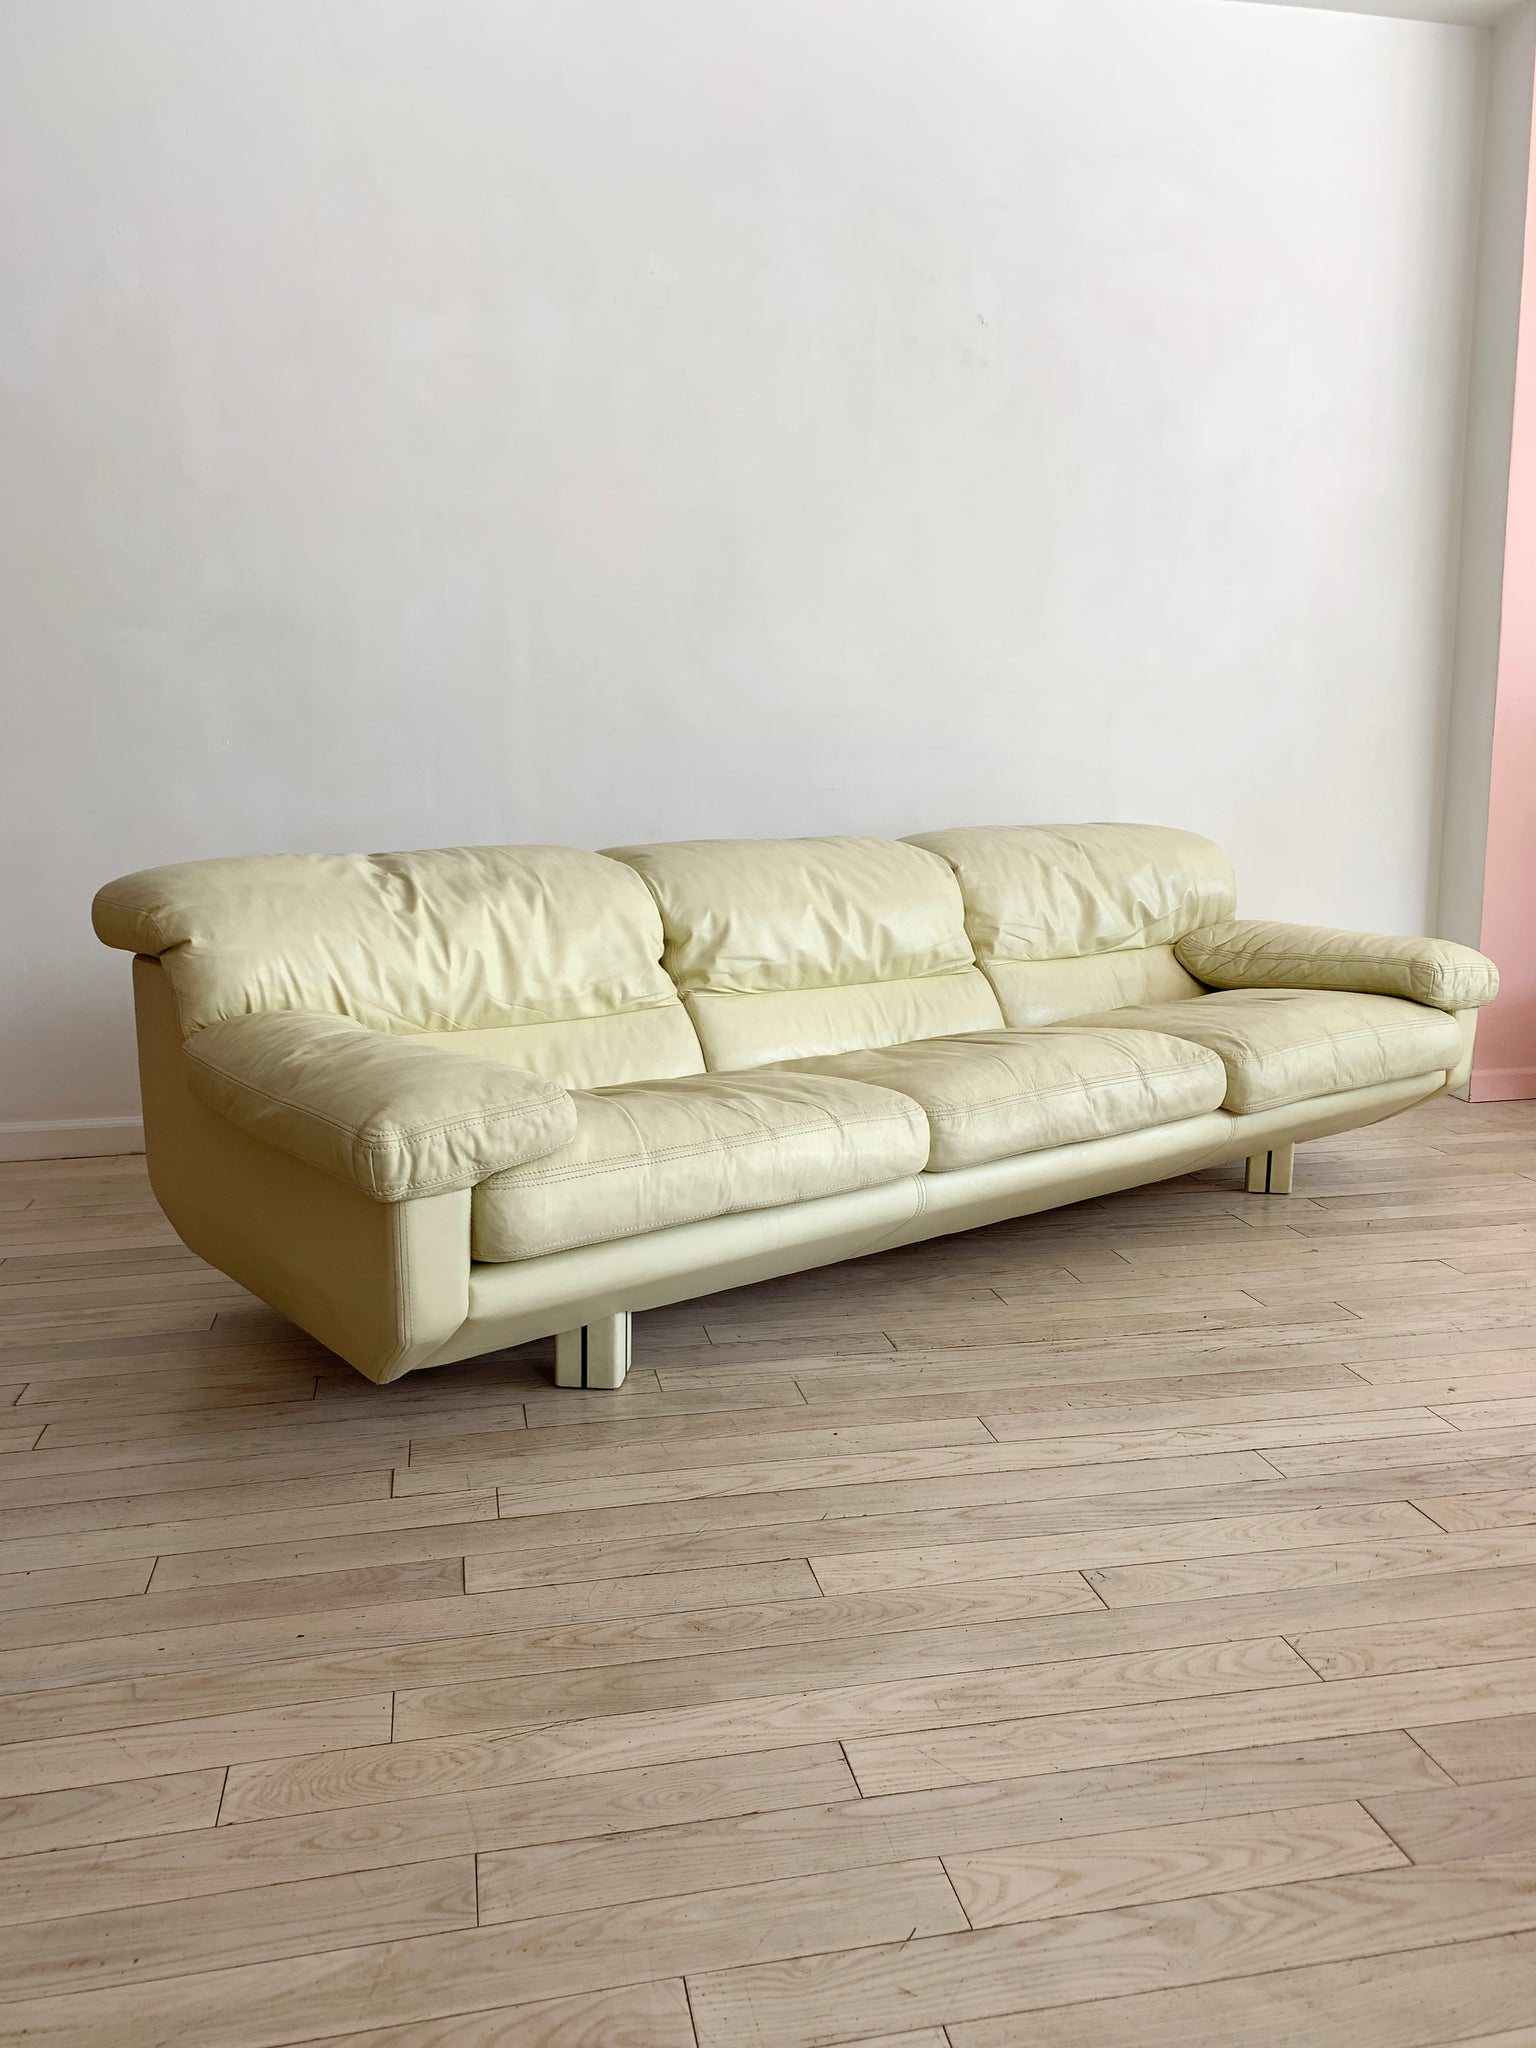 Enjoyable 1980S Italian Cream Leather Sofas By Marco Zani Home Union Nyc Download Free Architecture Designs Scobabritishbridgeorg